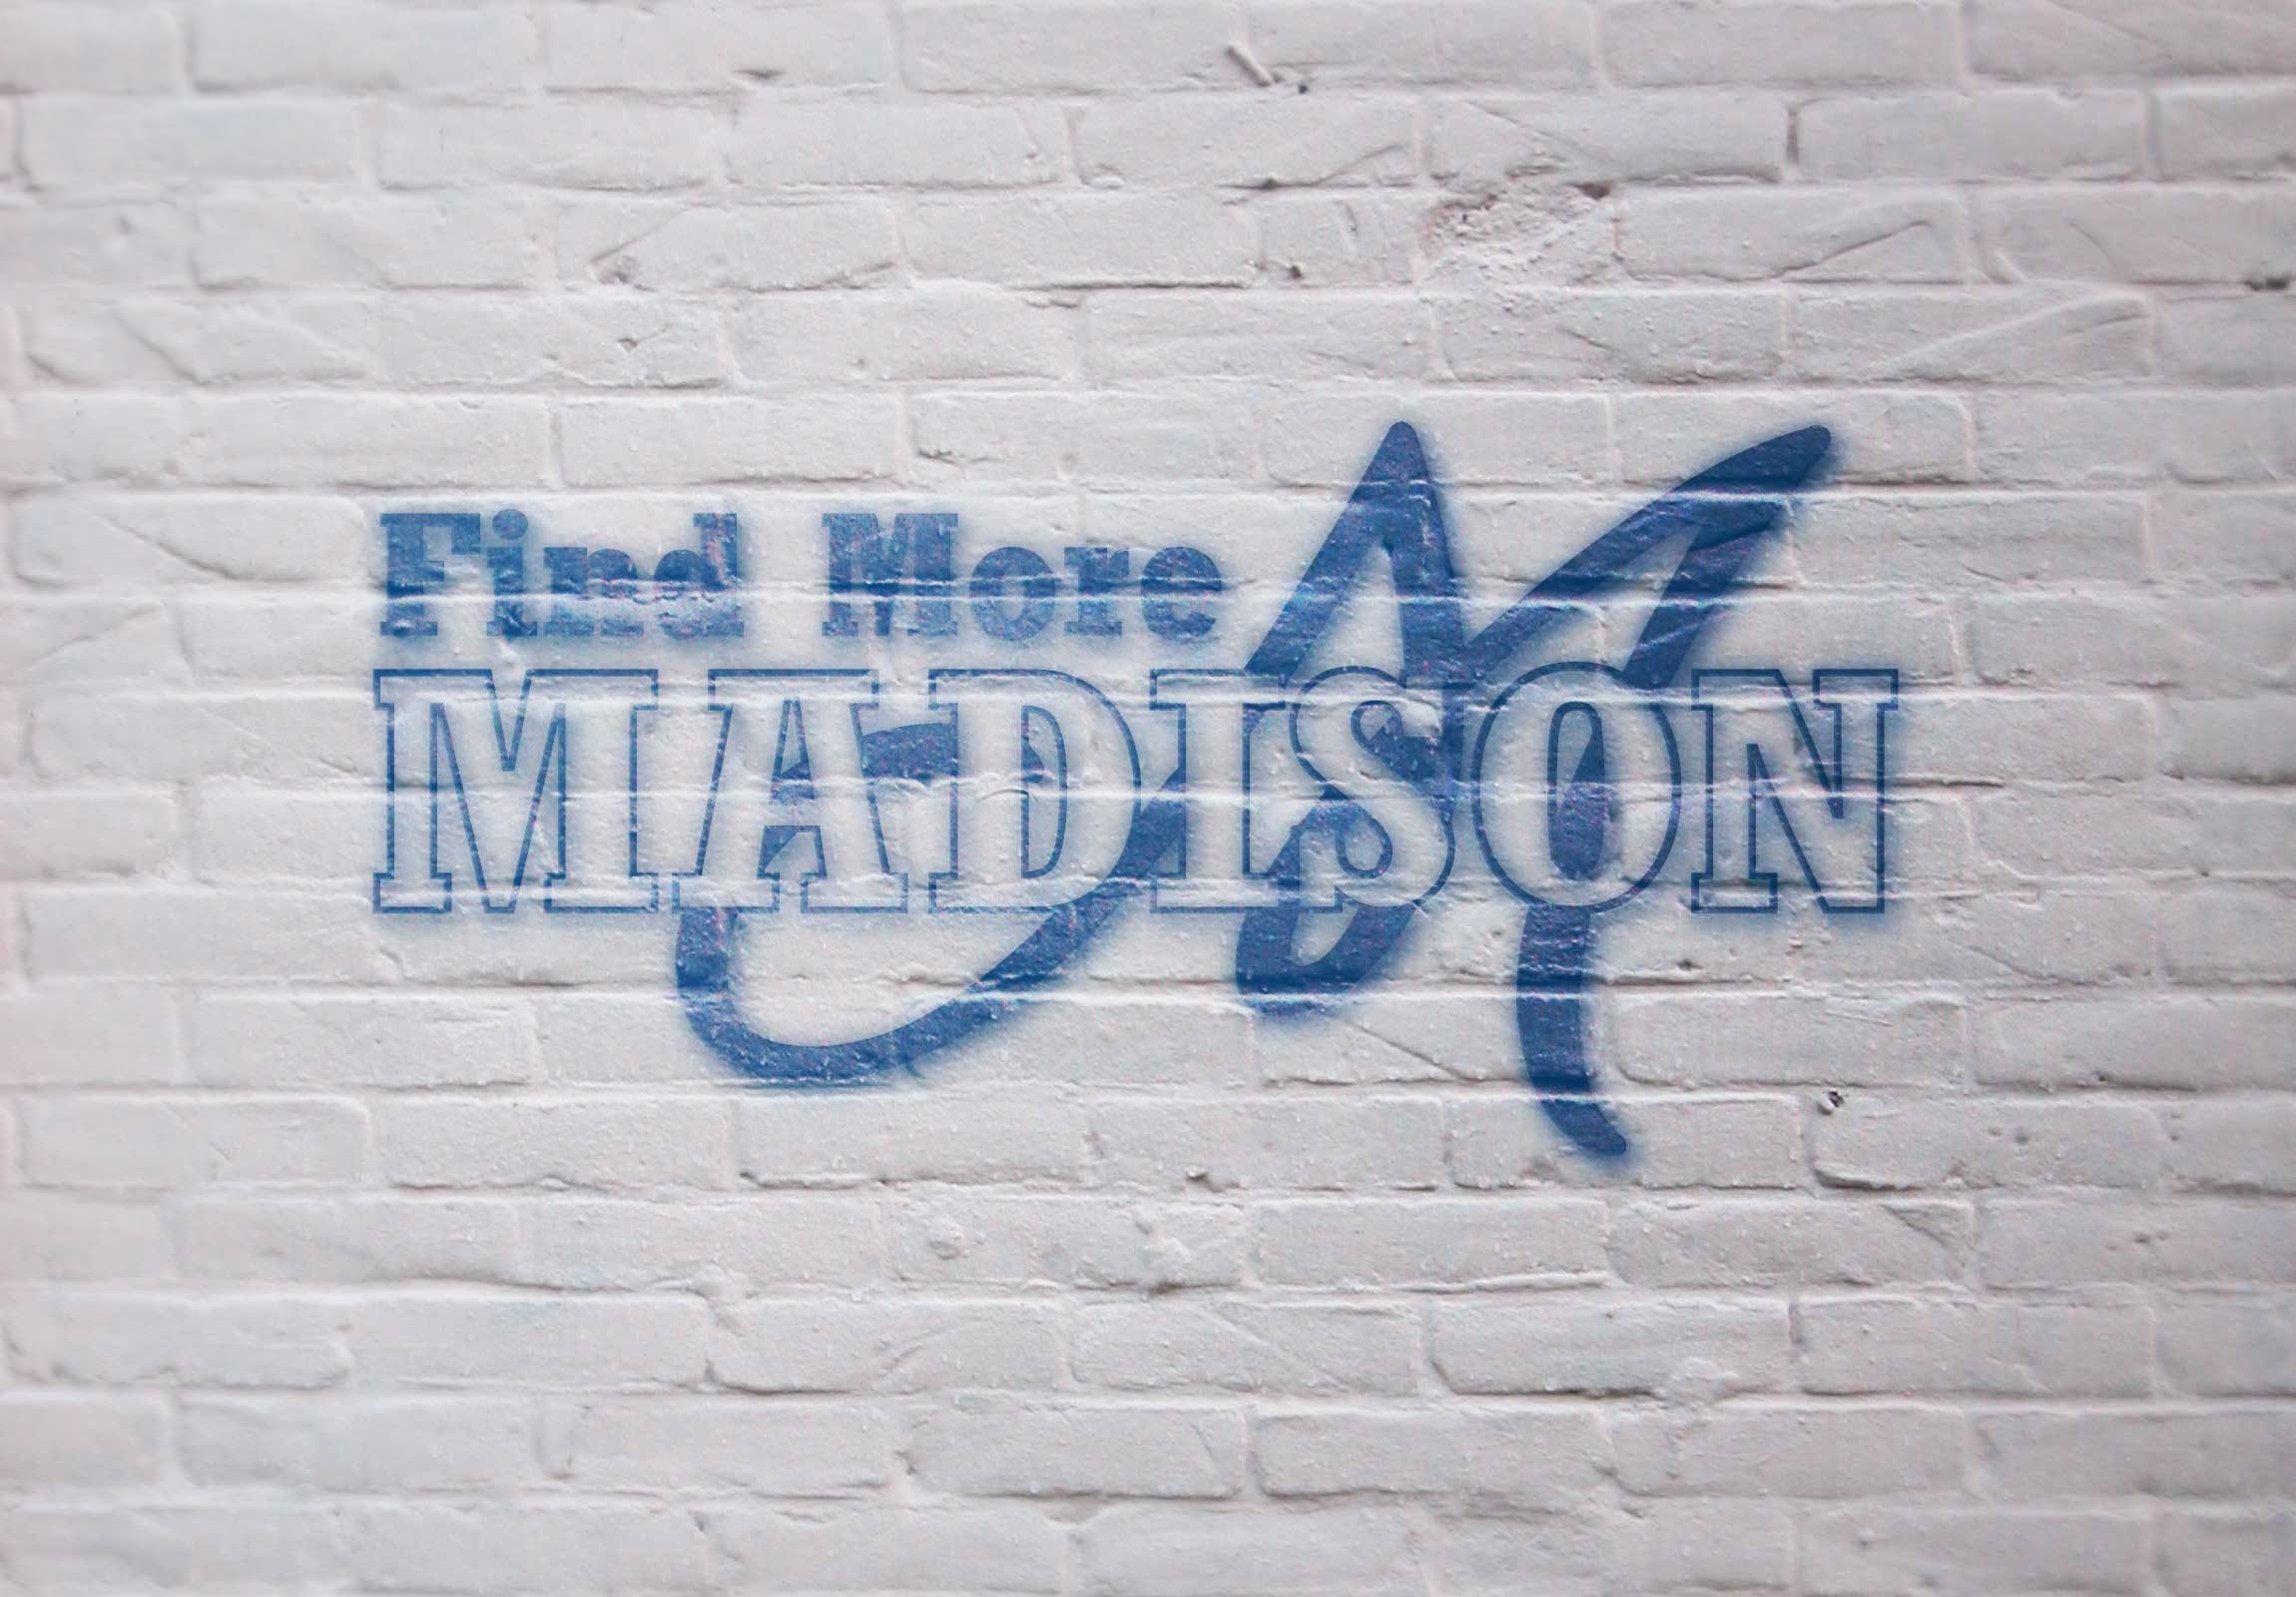 FMM-WhitewDROP-in-Blue-on-Brick-Wall